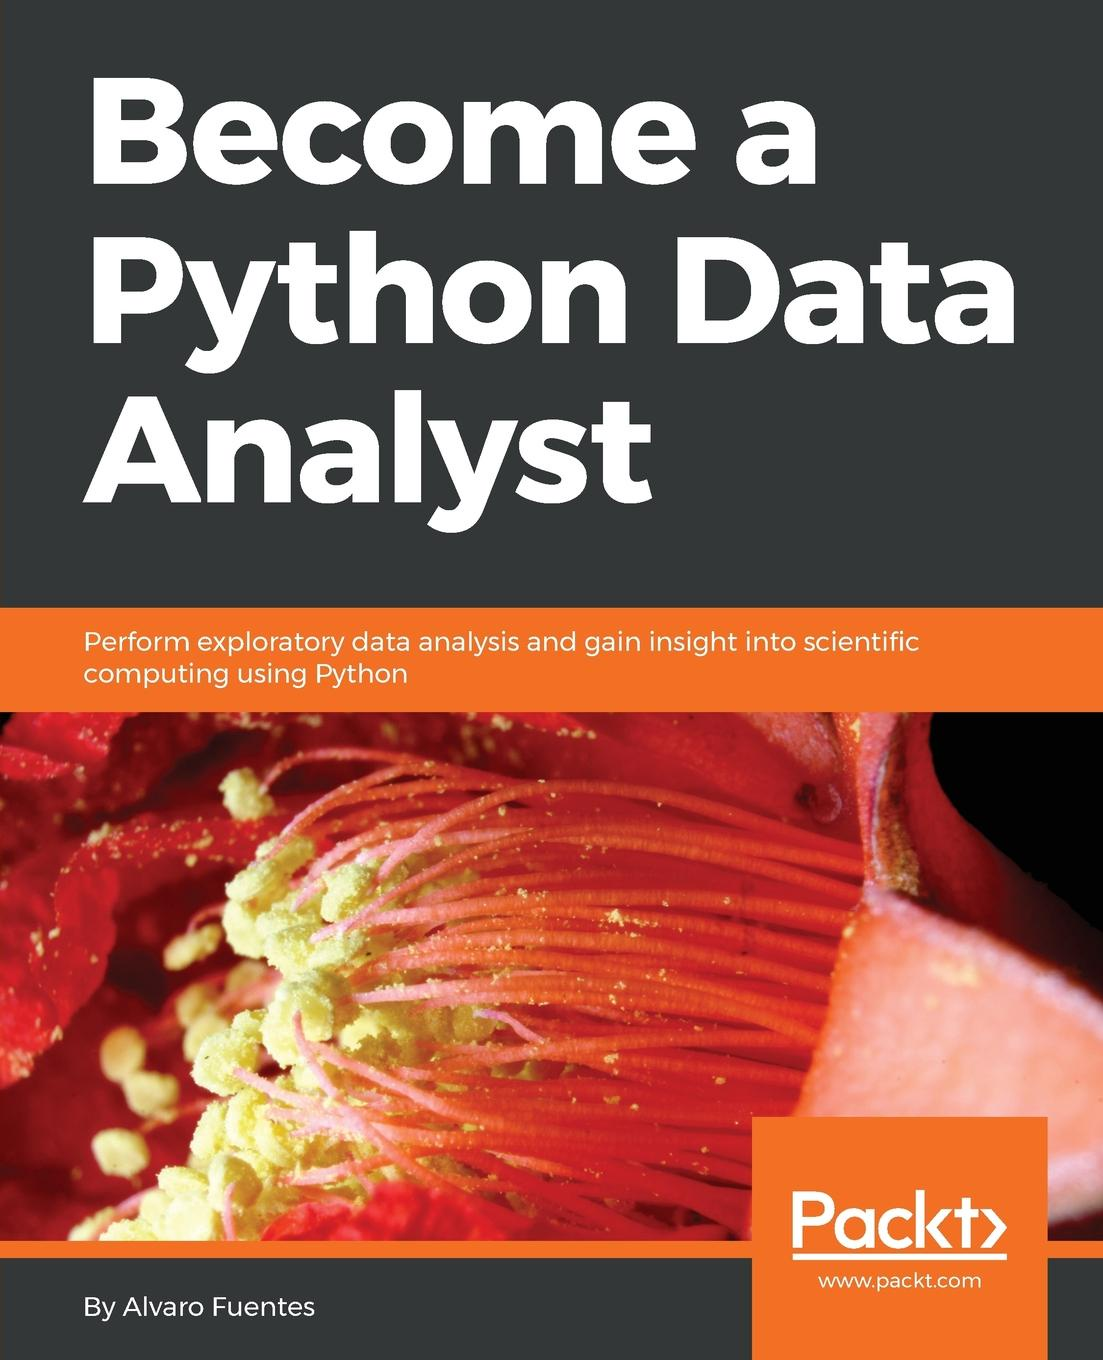 Alvaro Fuentes Become a Python Data Analyst